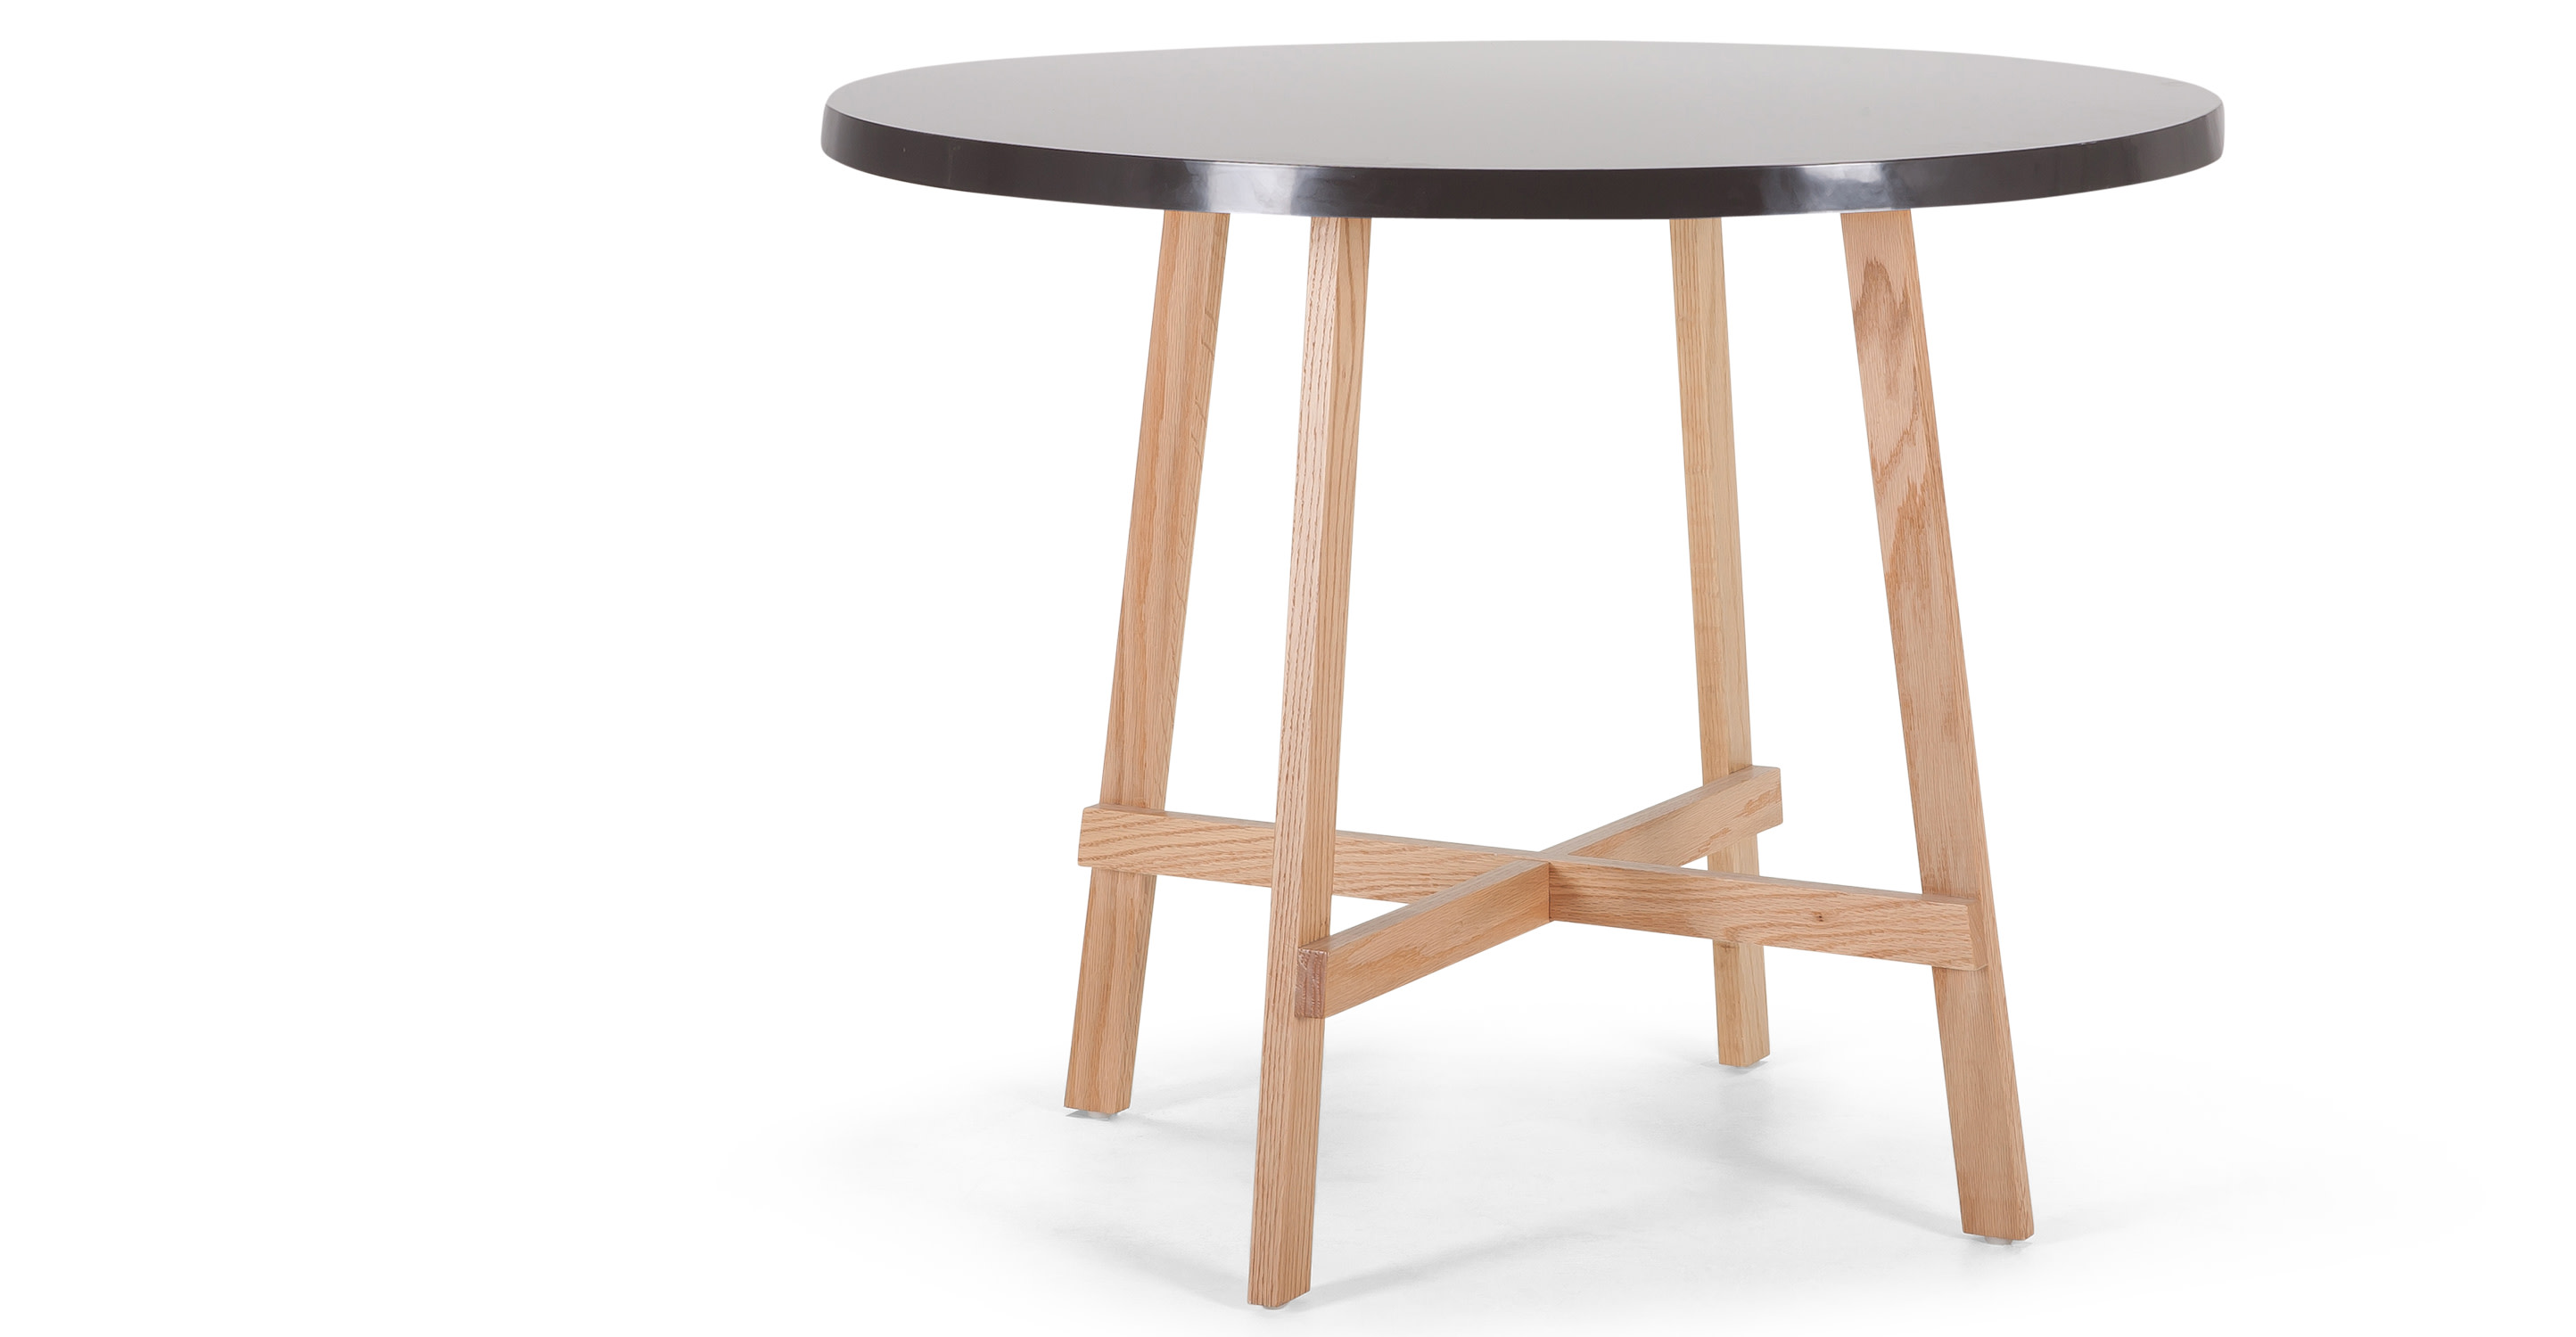 Spun Round Dining Table in natural ash and black madecom : spundiningtableblacklb11 from www.made.com size 2889 x 1500 jpeg 207kB